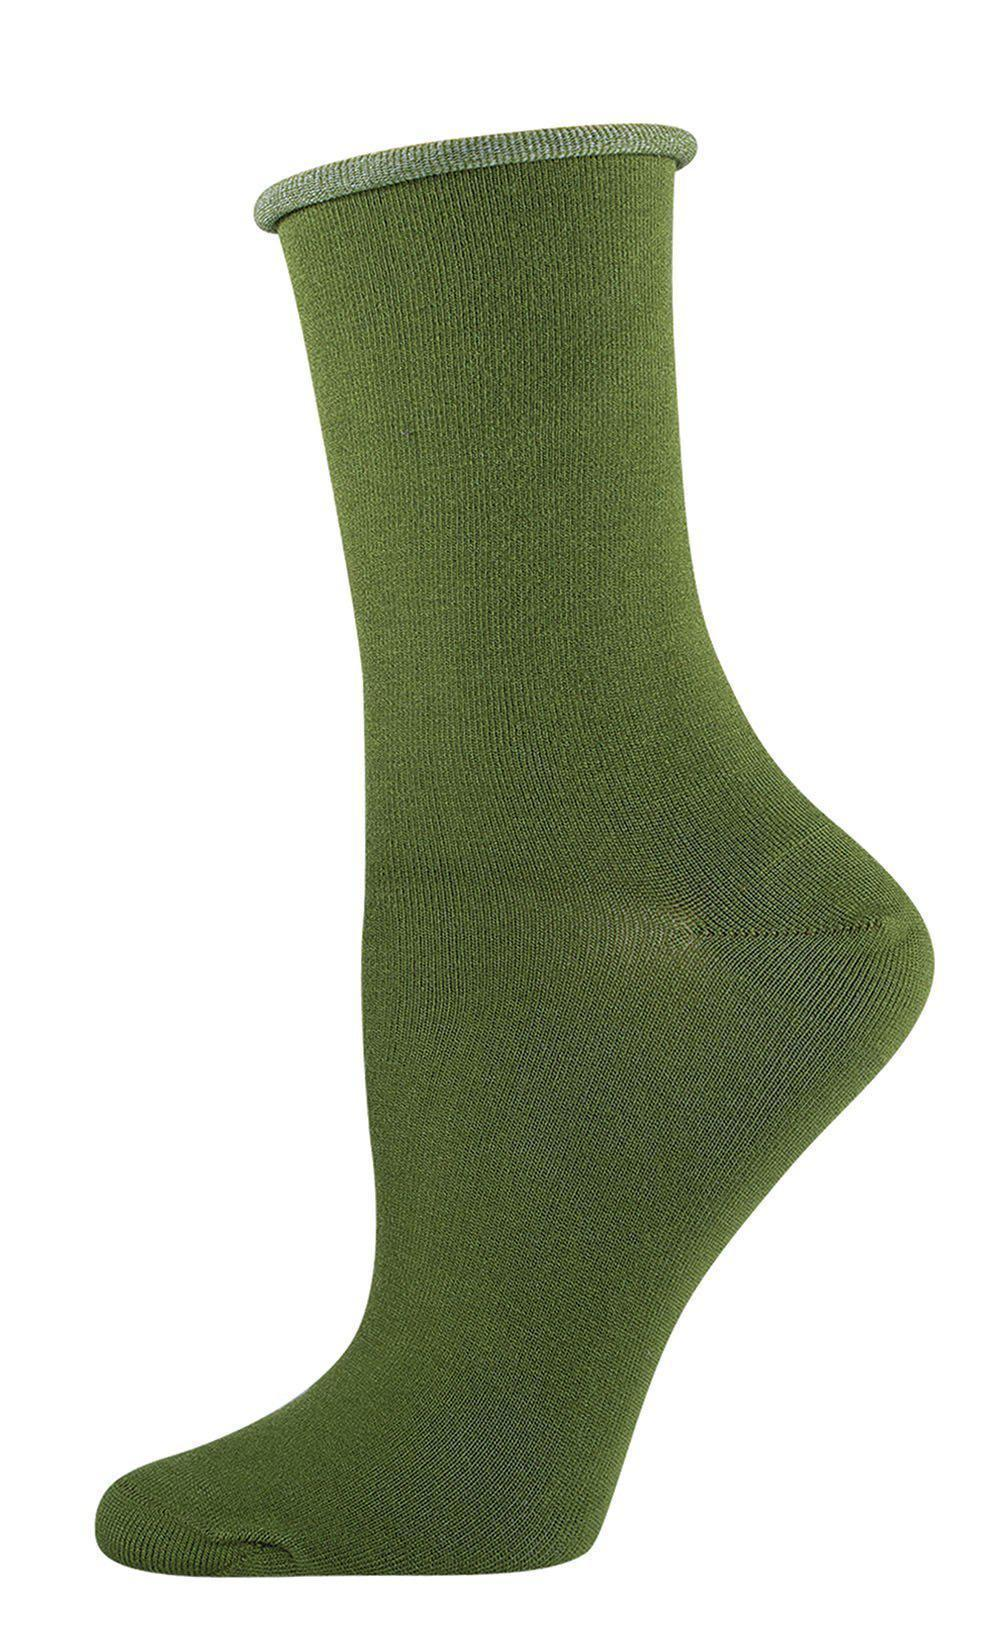 Socksmith - Roll Top Bamboo Crew Socks | Women's - Knock Your Socks Off